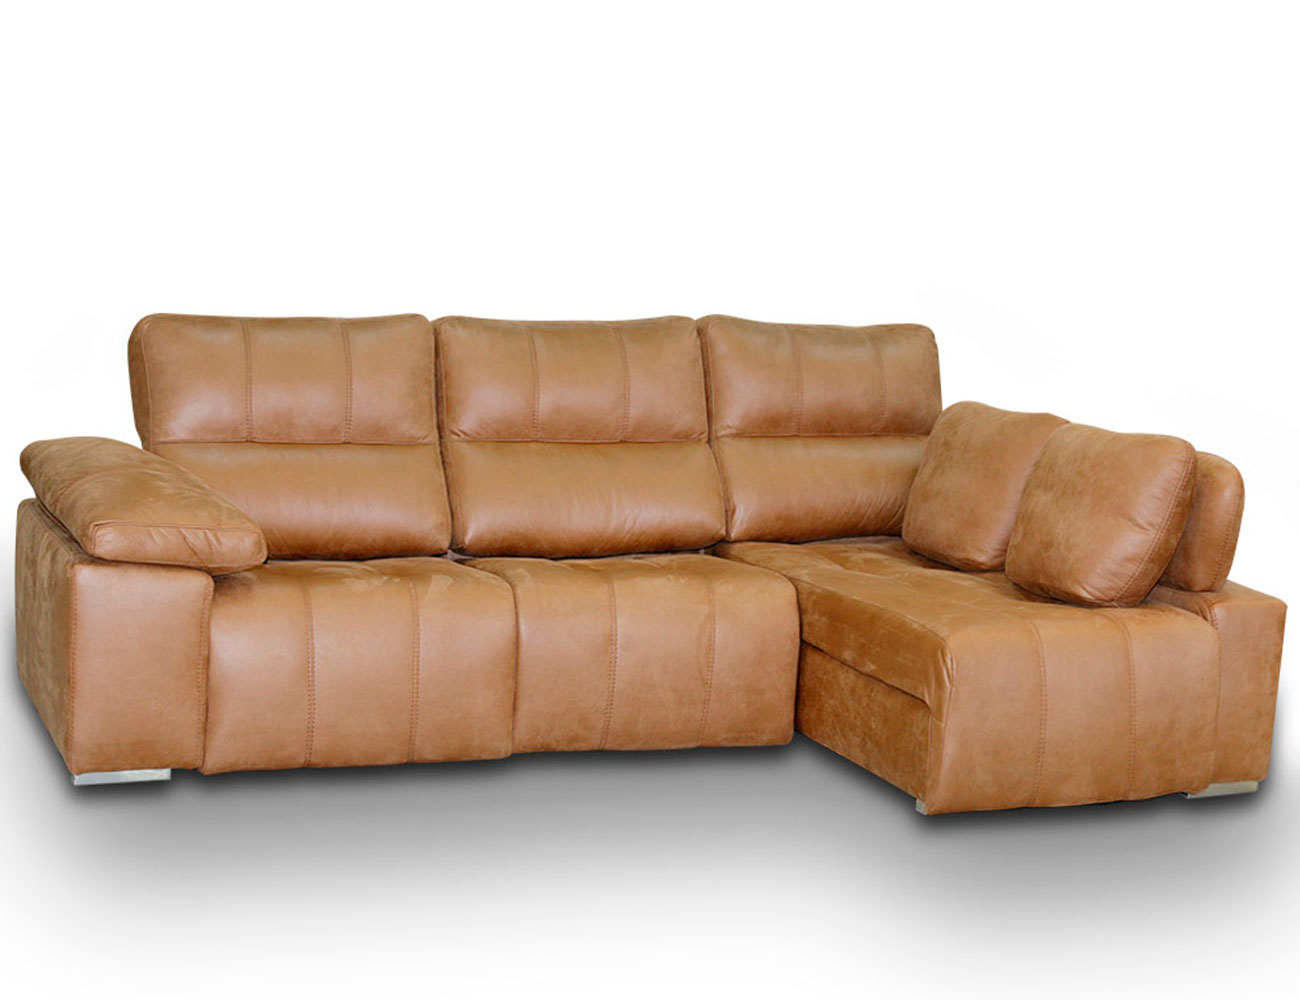 Sofa chaiselongue relax 2 motores anti manchas41